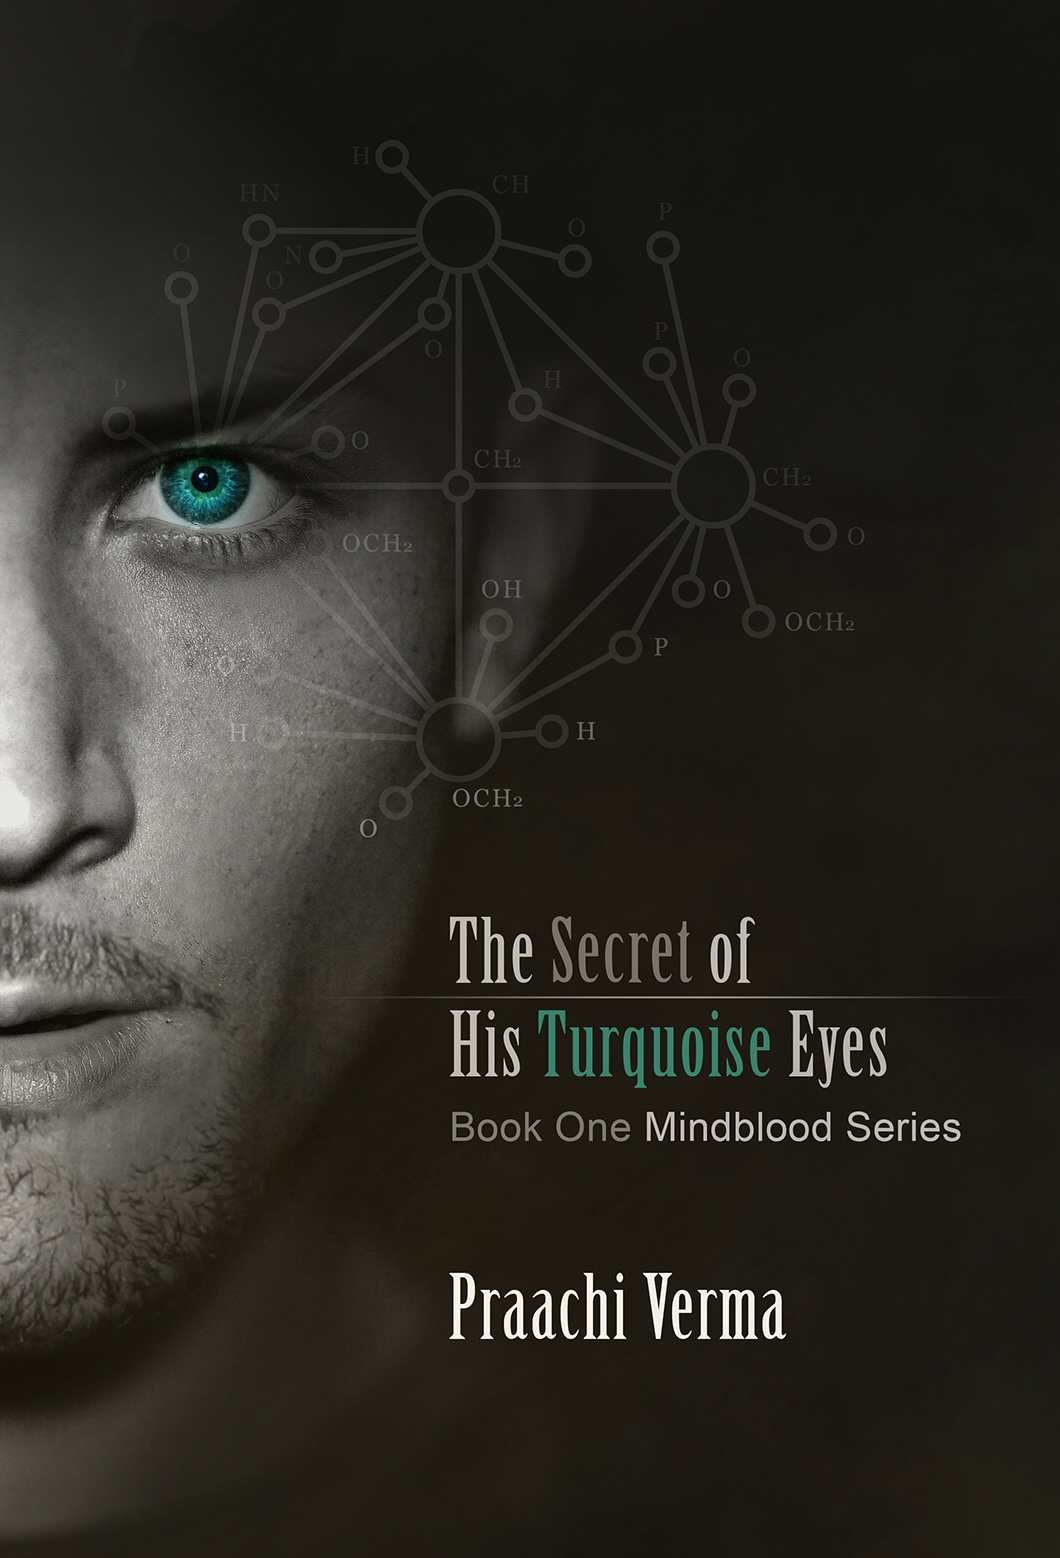 The Secret of His Turquoise Eyes